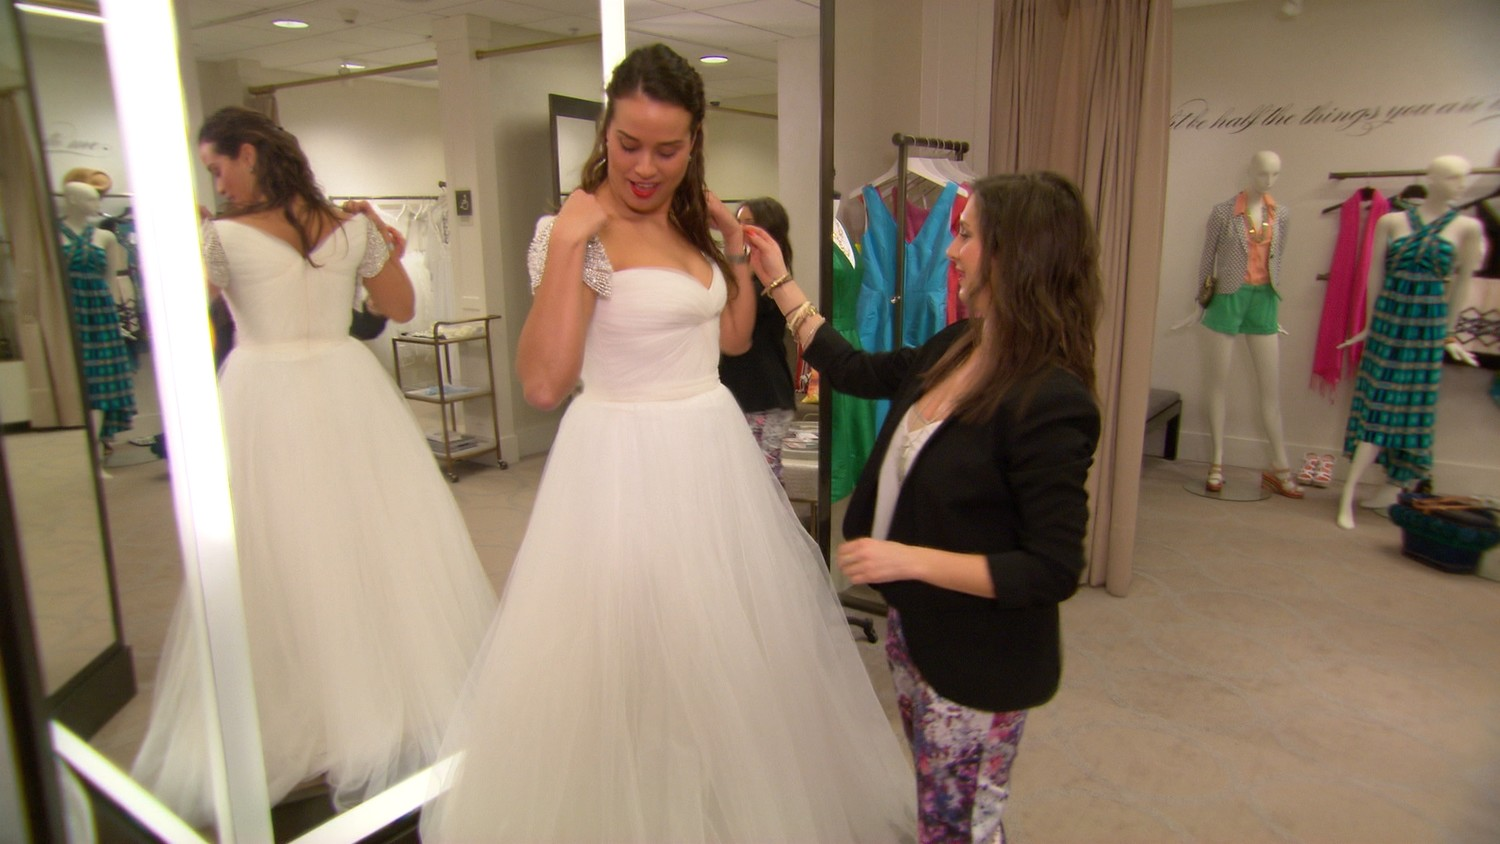 the wedding suite experience at nordstrom now playing